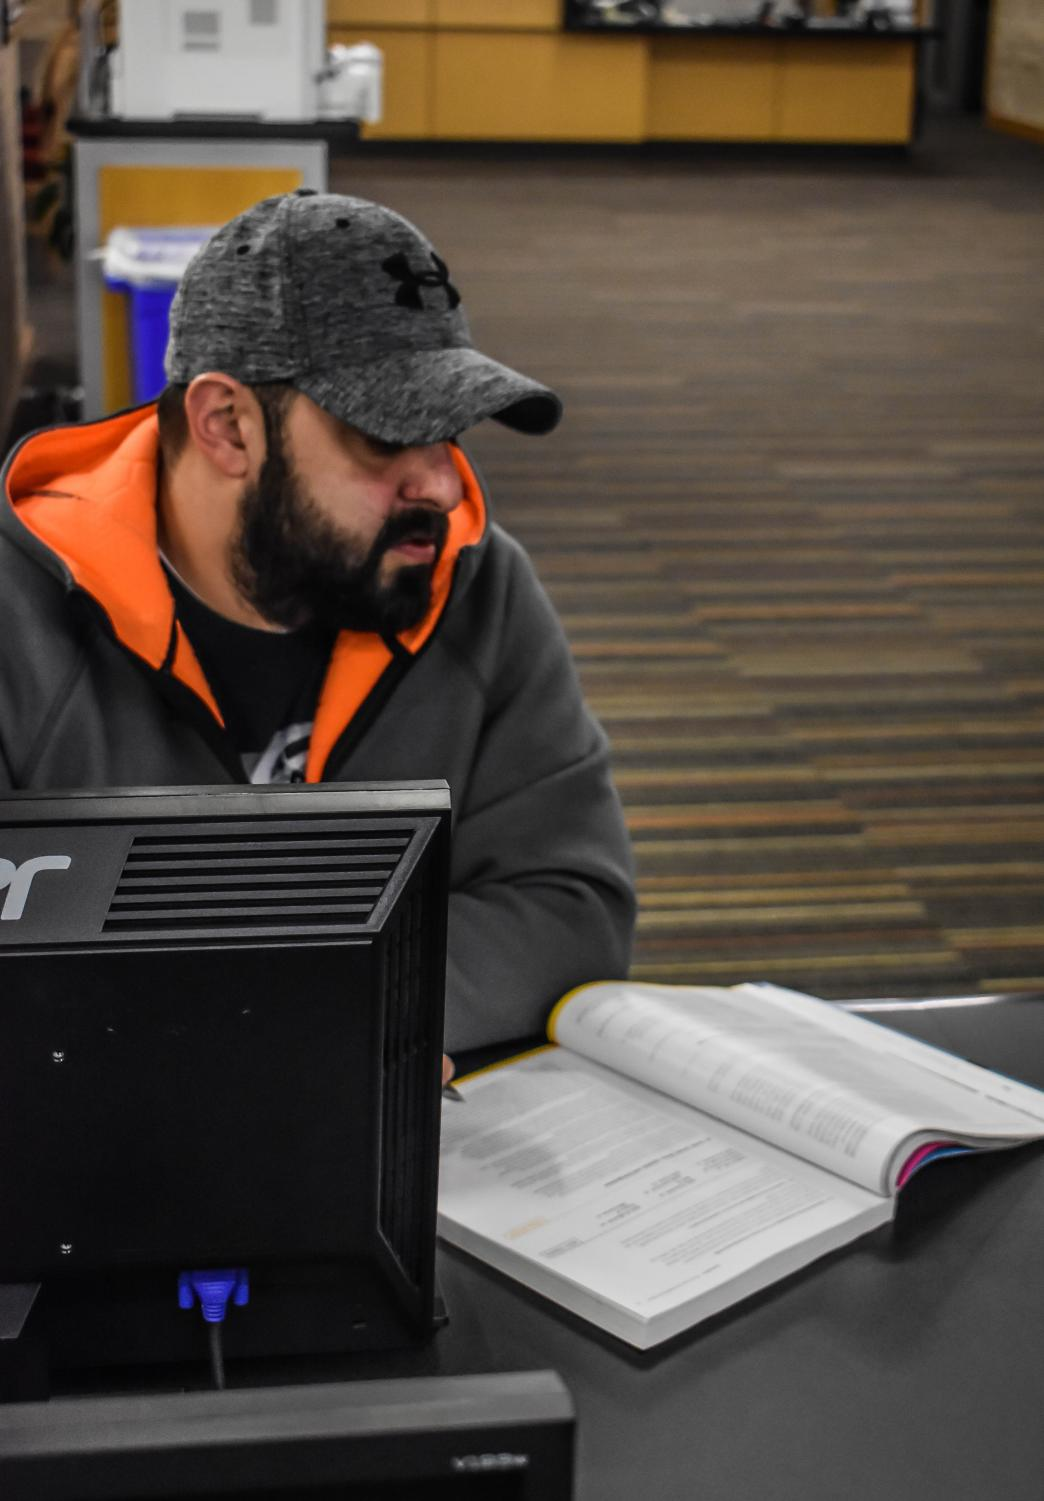 First-year transfer studies student Rooz Inanloo reads in the library. Photo by Daniel Salomon